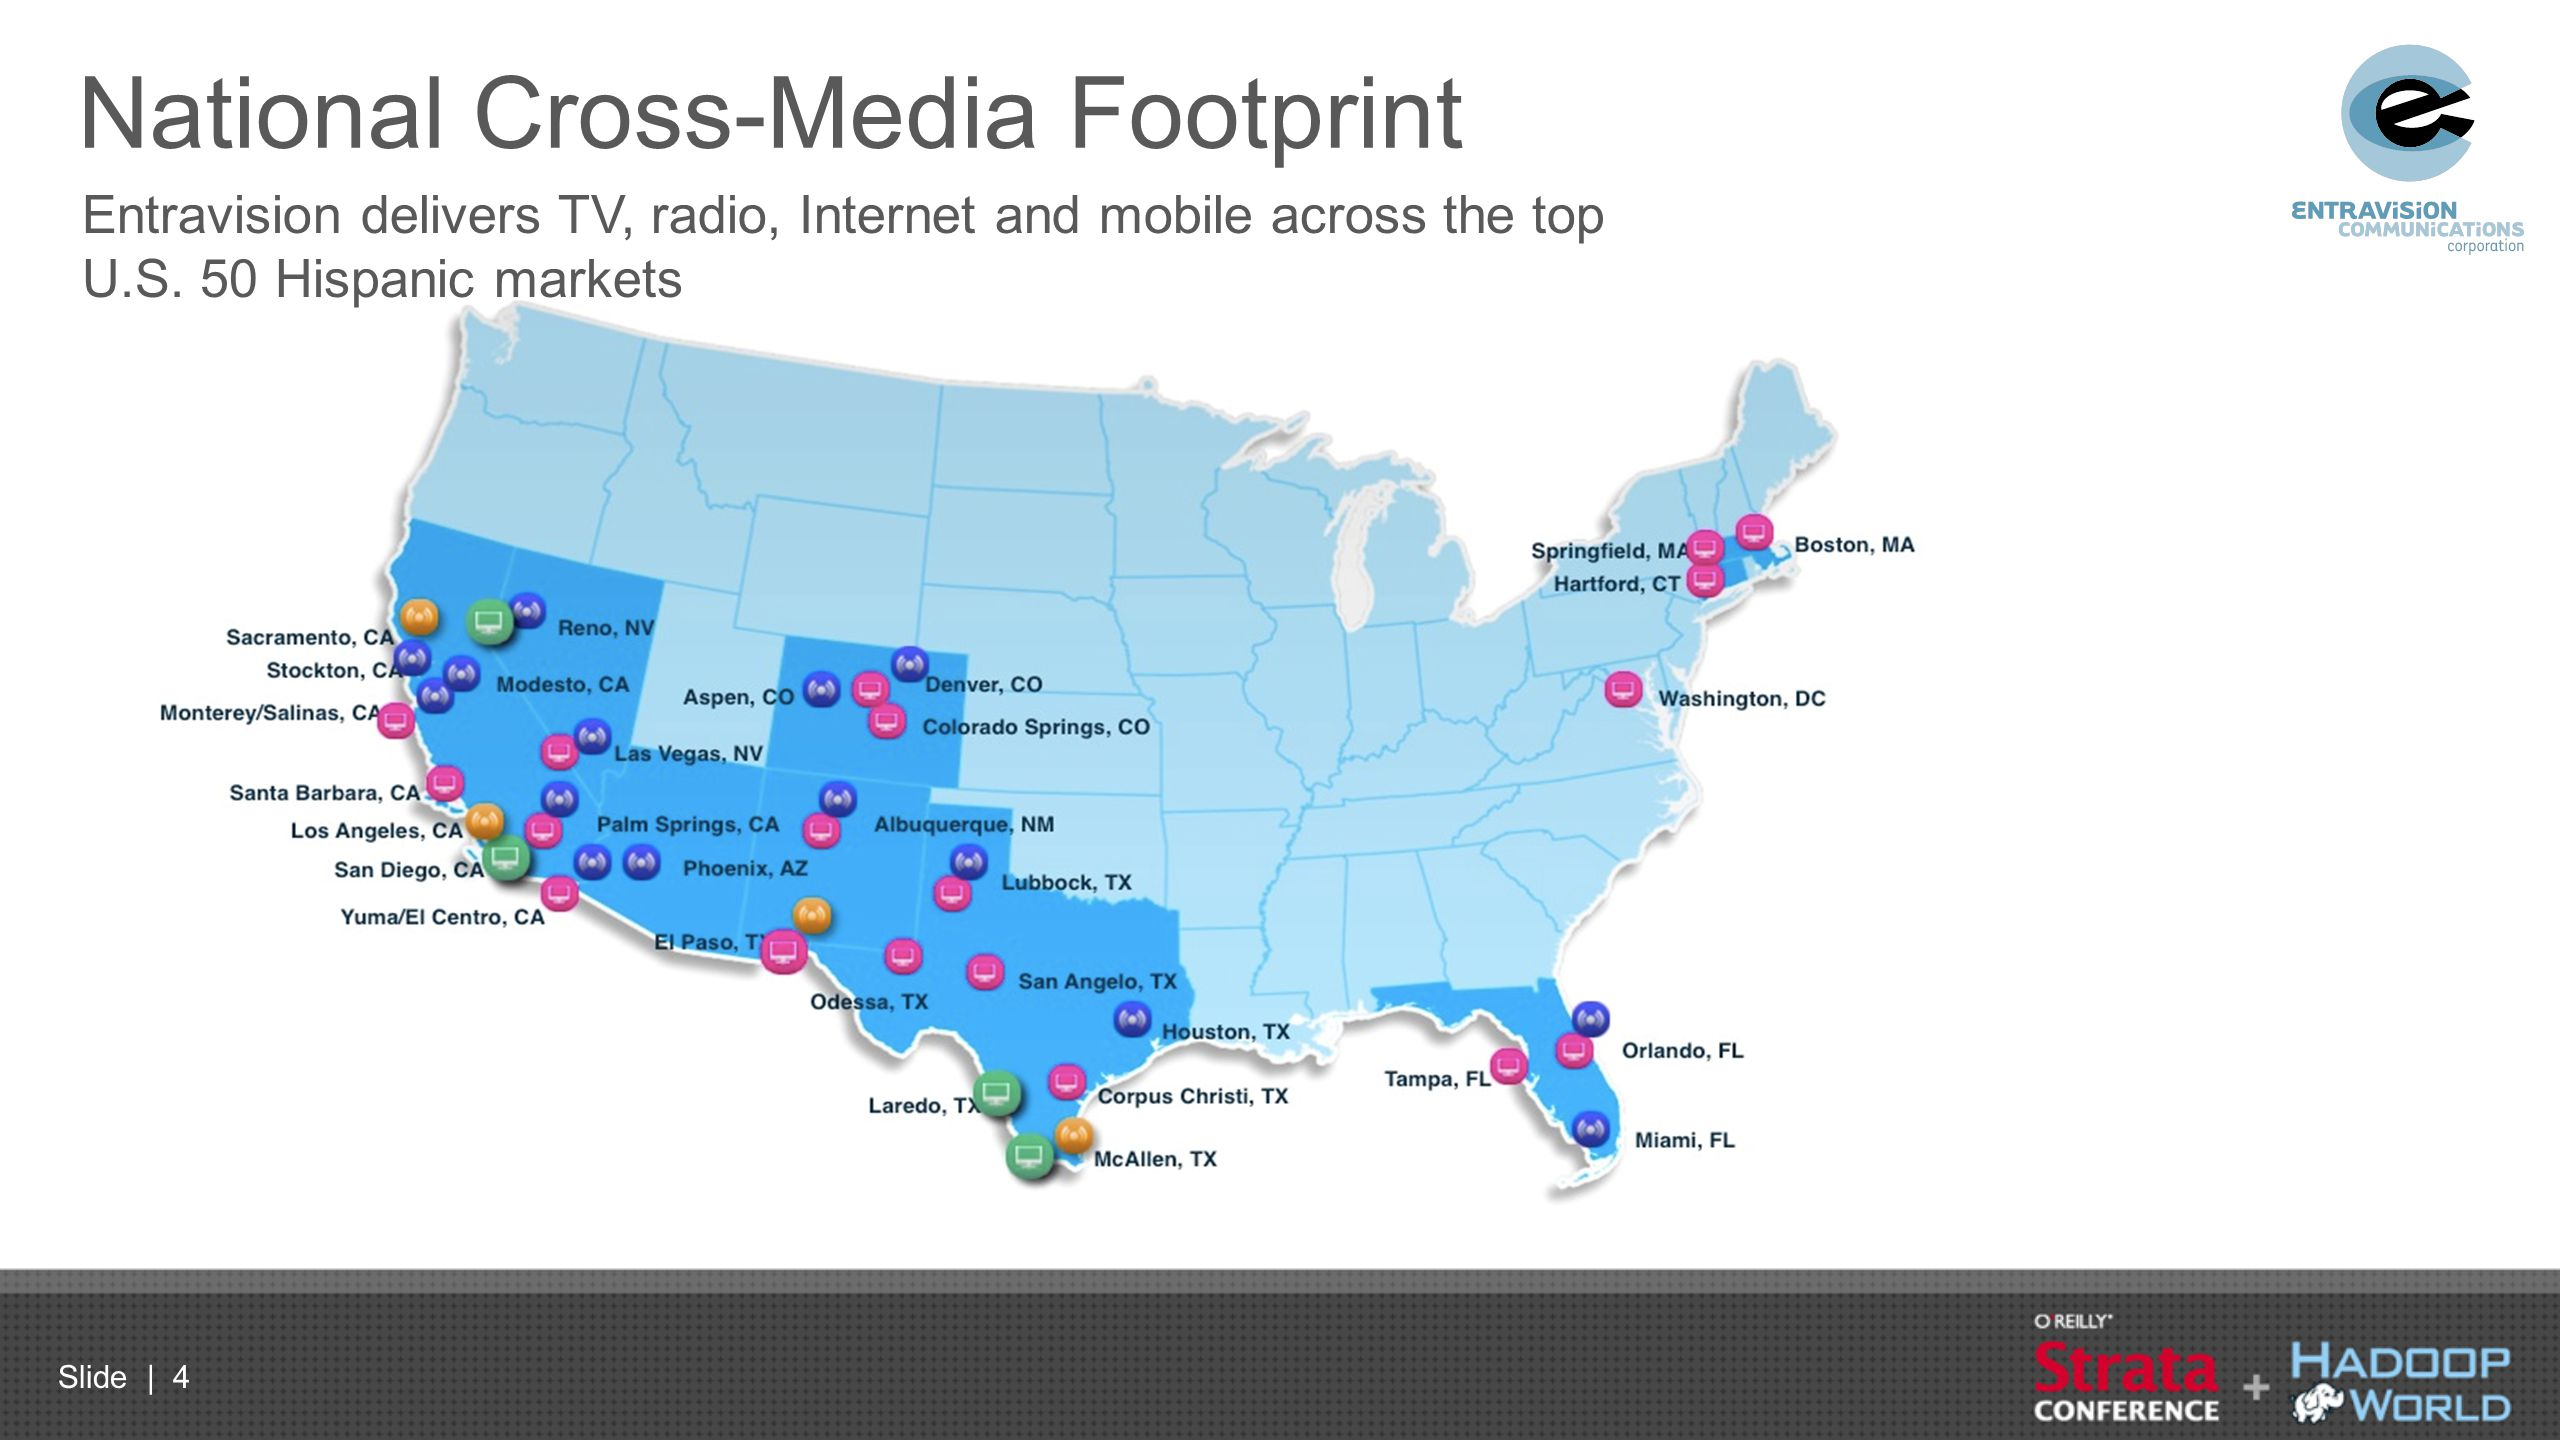 National Cross-Media Footprint